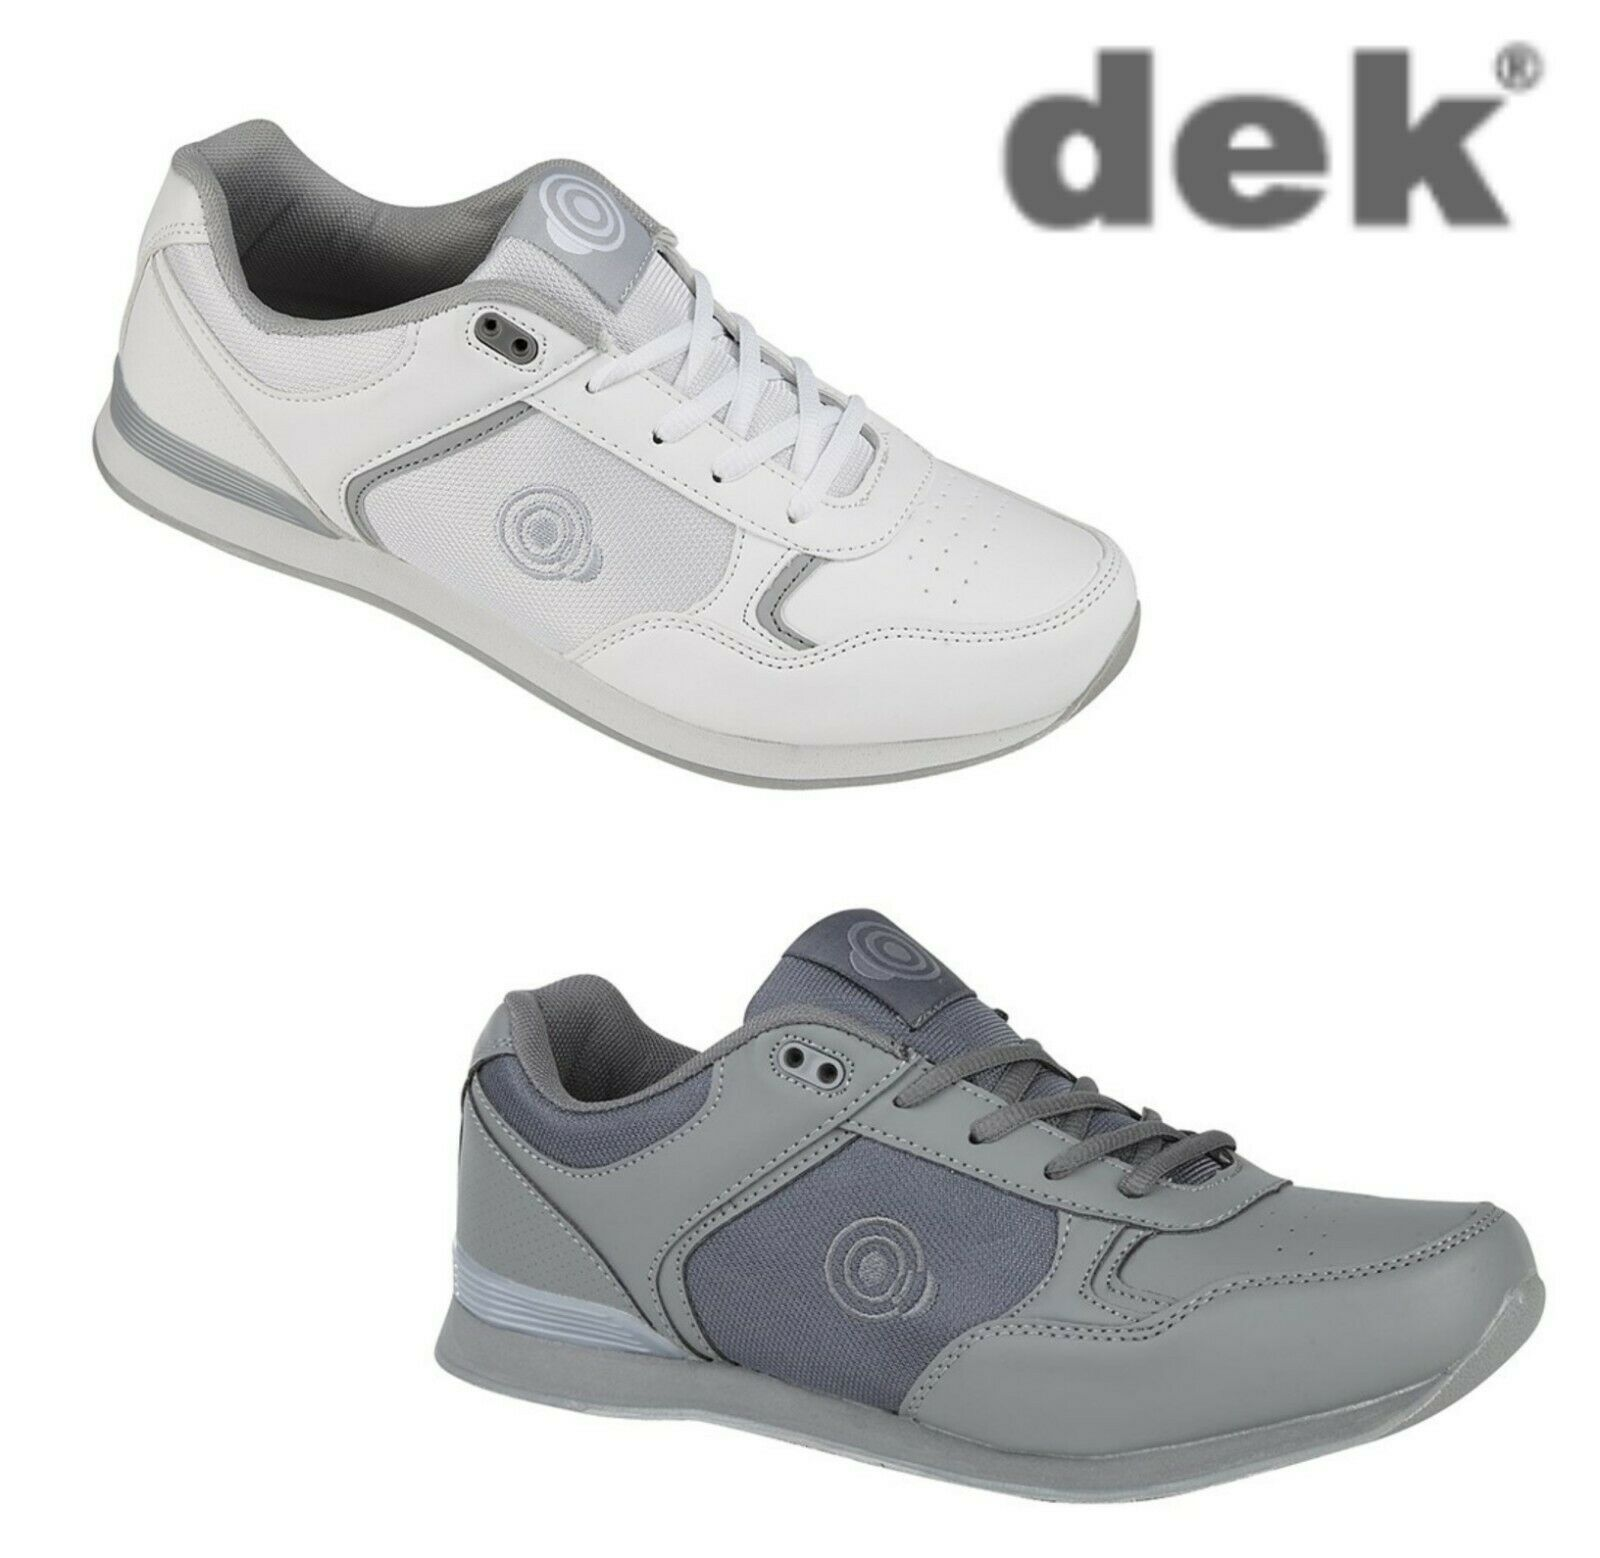 Mens Lace Up Trainer-Style Bowling shoes Grey  White Size 3 4 5 6 7 8 9 10 11 12